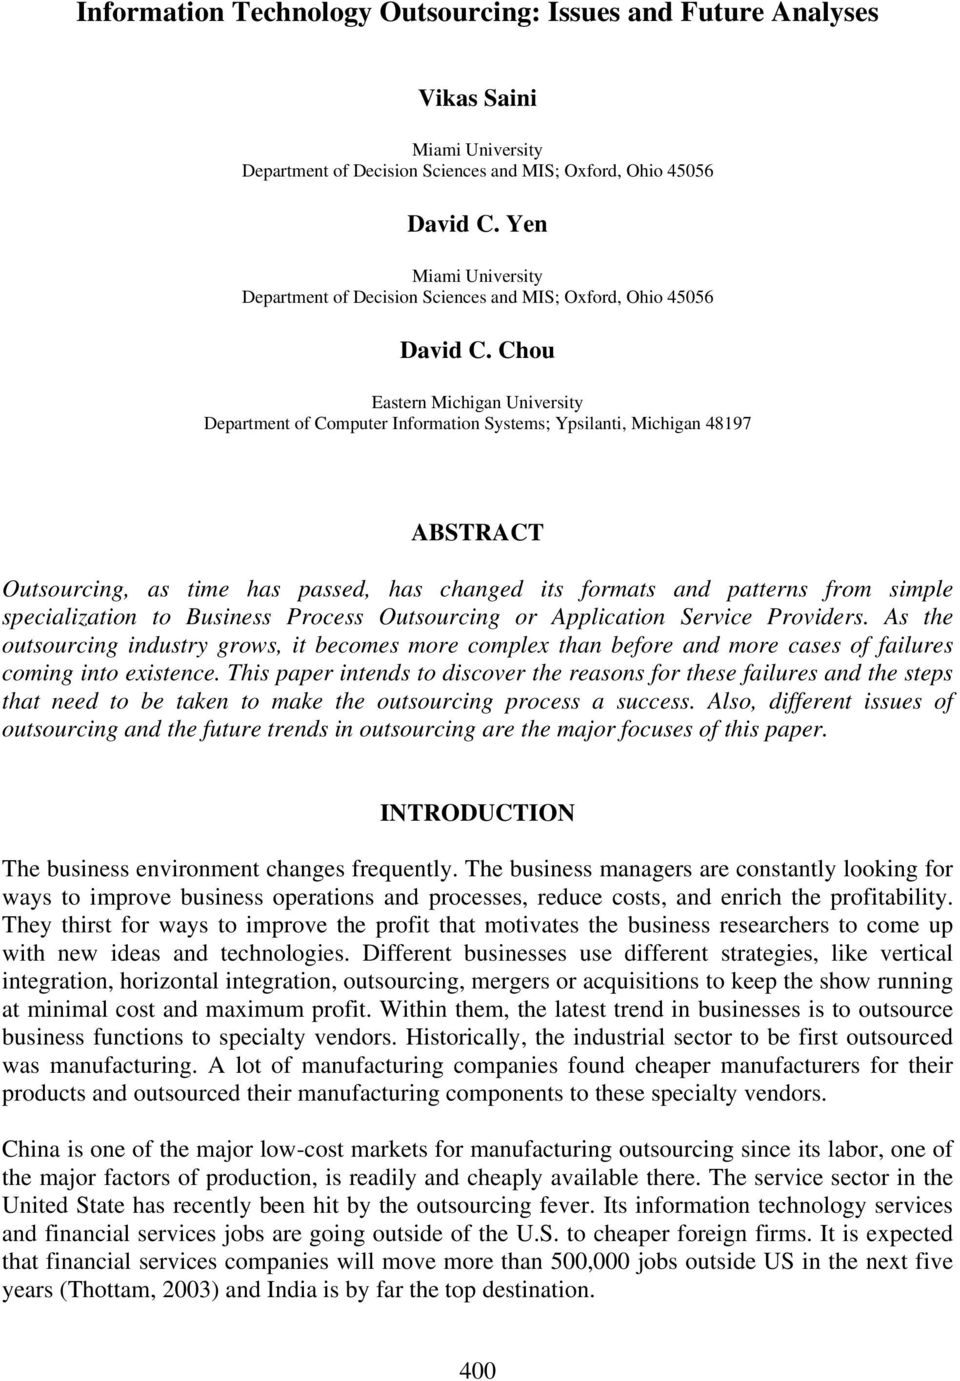 Chou Eastern Michigan University Department of Computer Information Systems; Ypsilanti, Michigan 48197 ABSTRACT Outsourcing, as time has passed, has changed its formats and patterns from simple